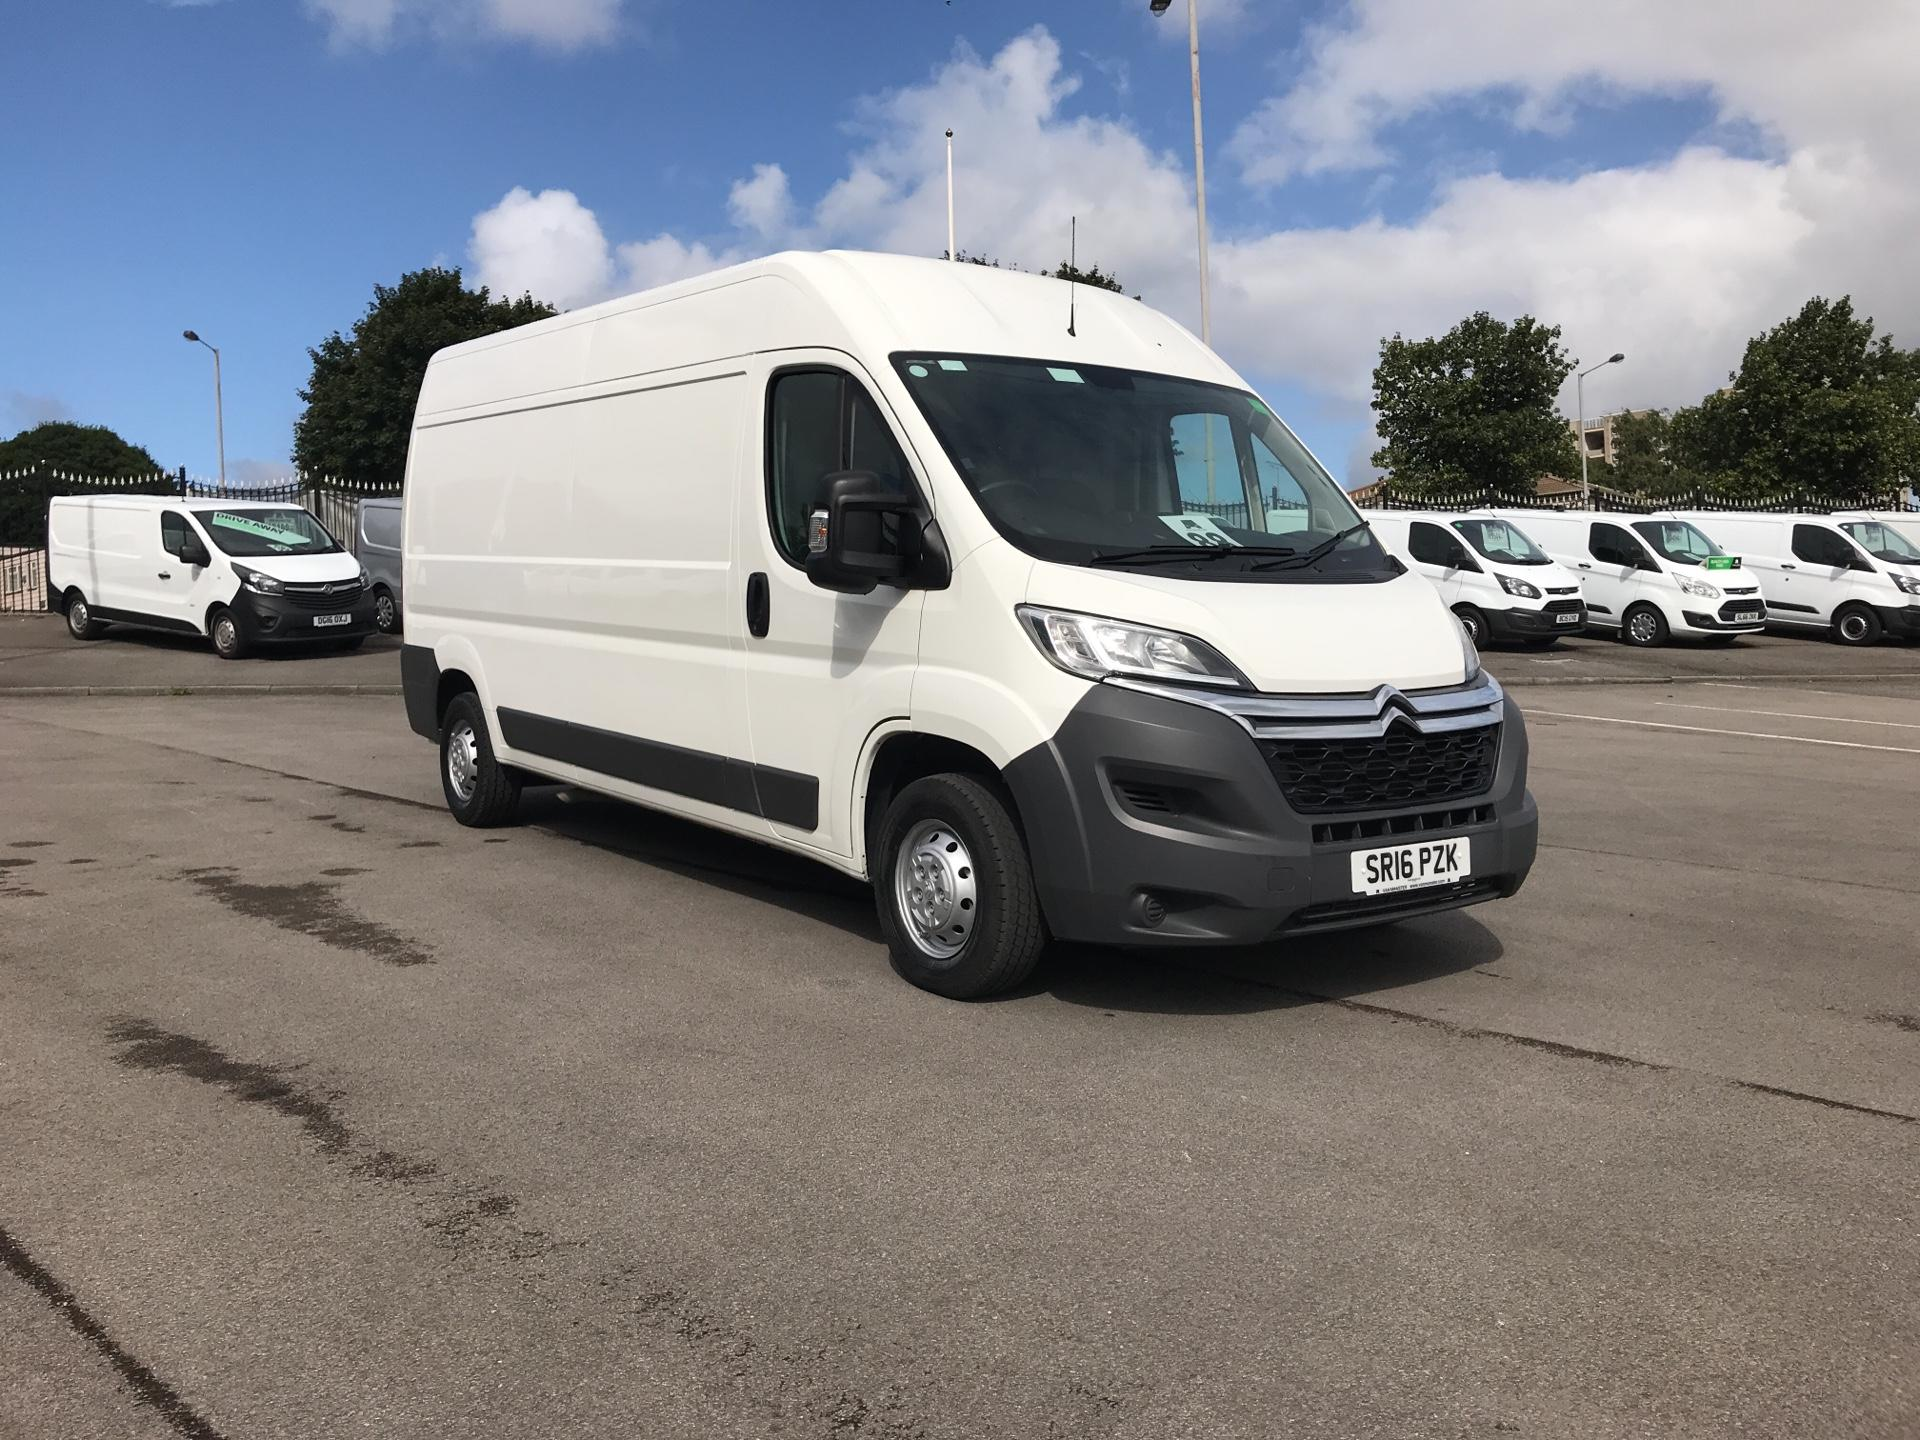 2016 Citroen Relay 2.2 Hdi H2 Van 130Ps Enterprise (SR16PZK)